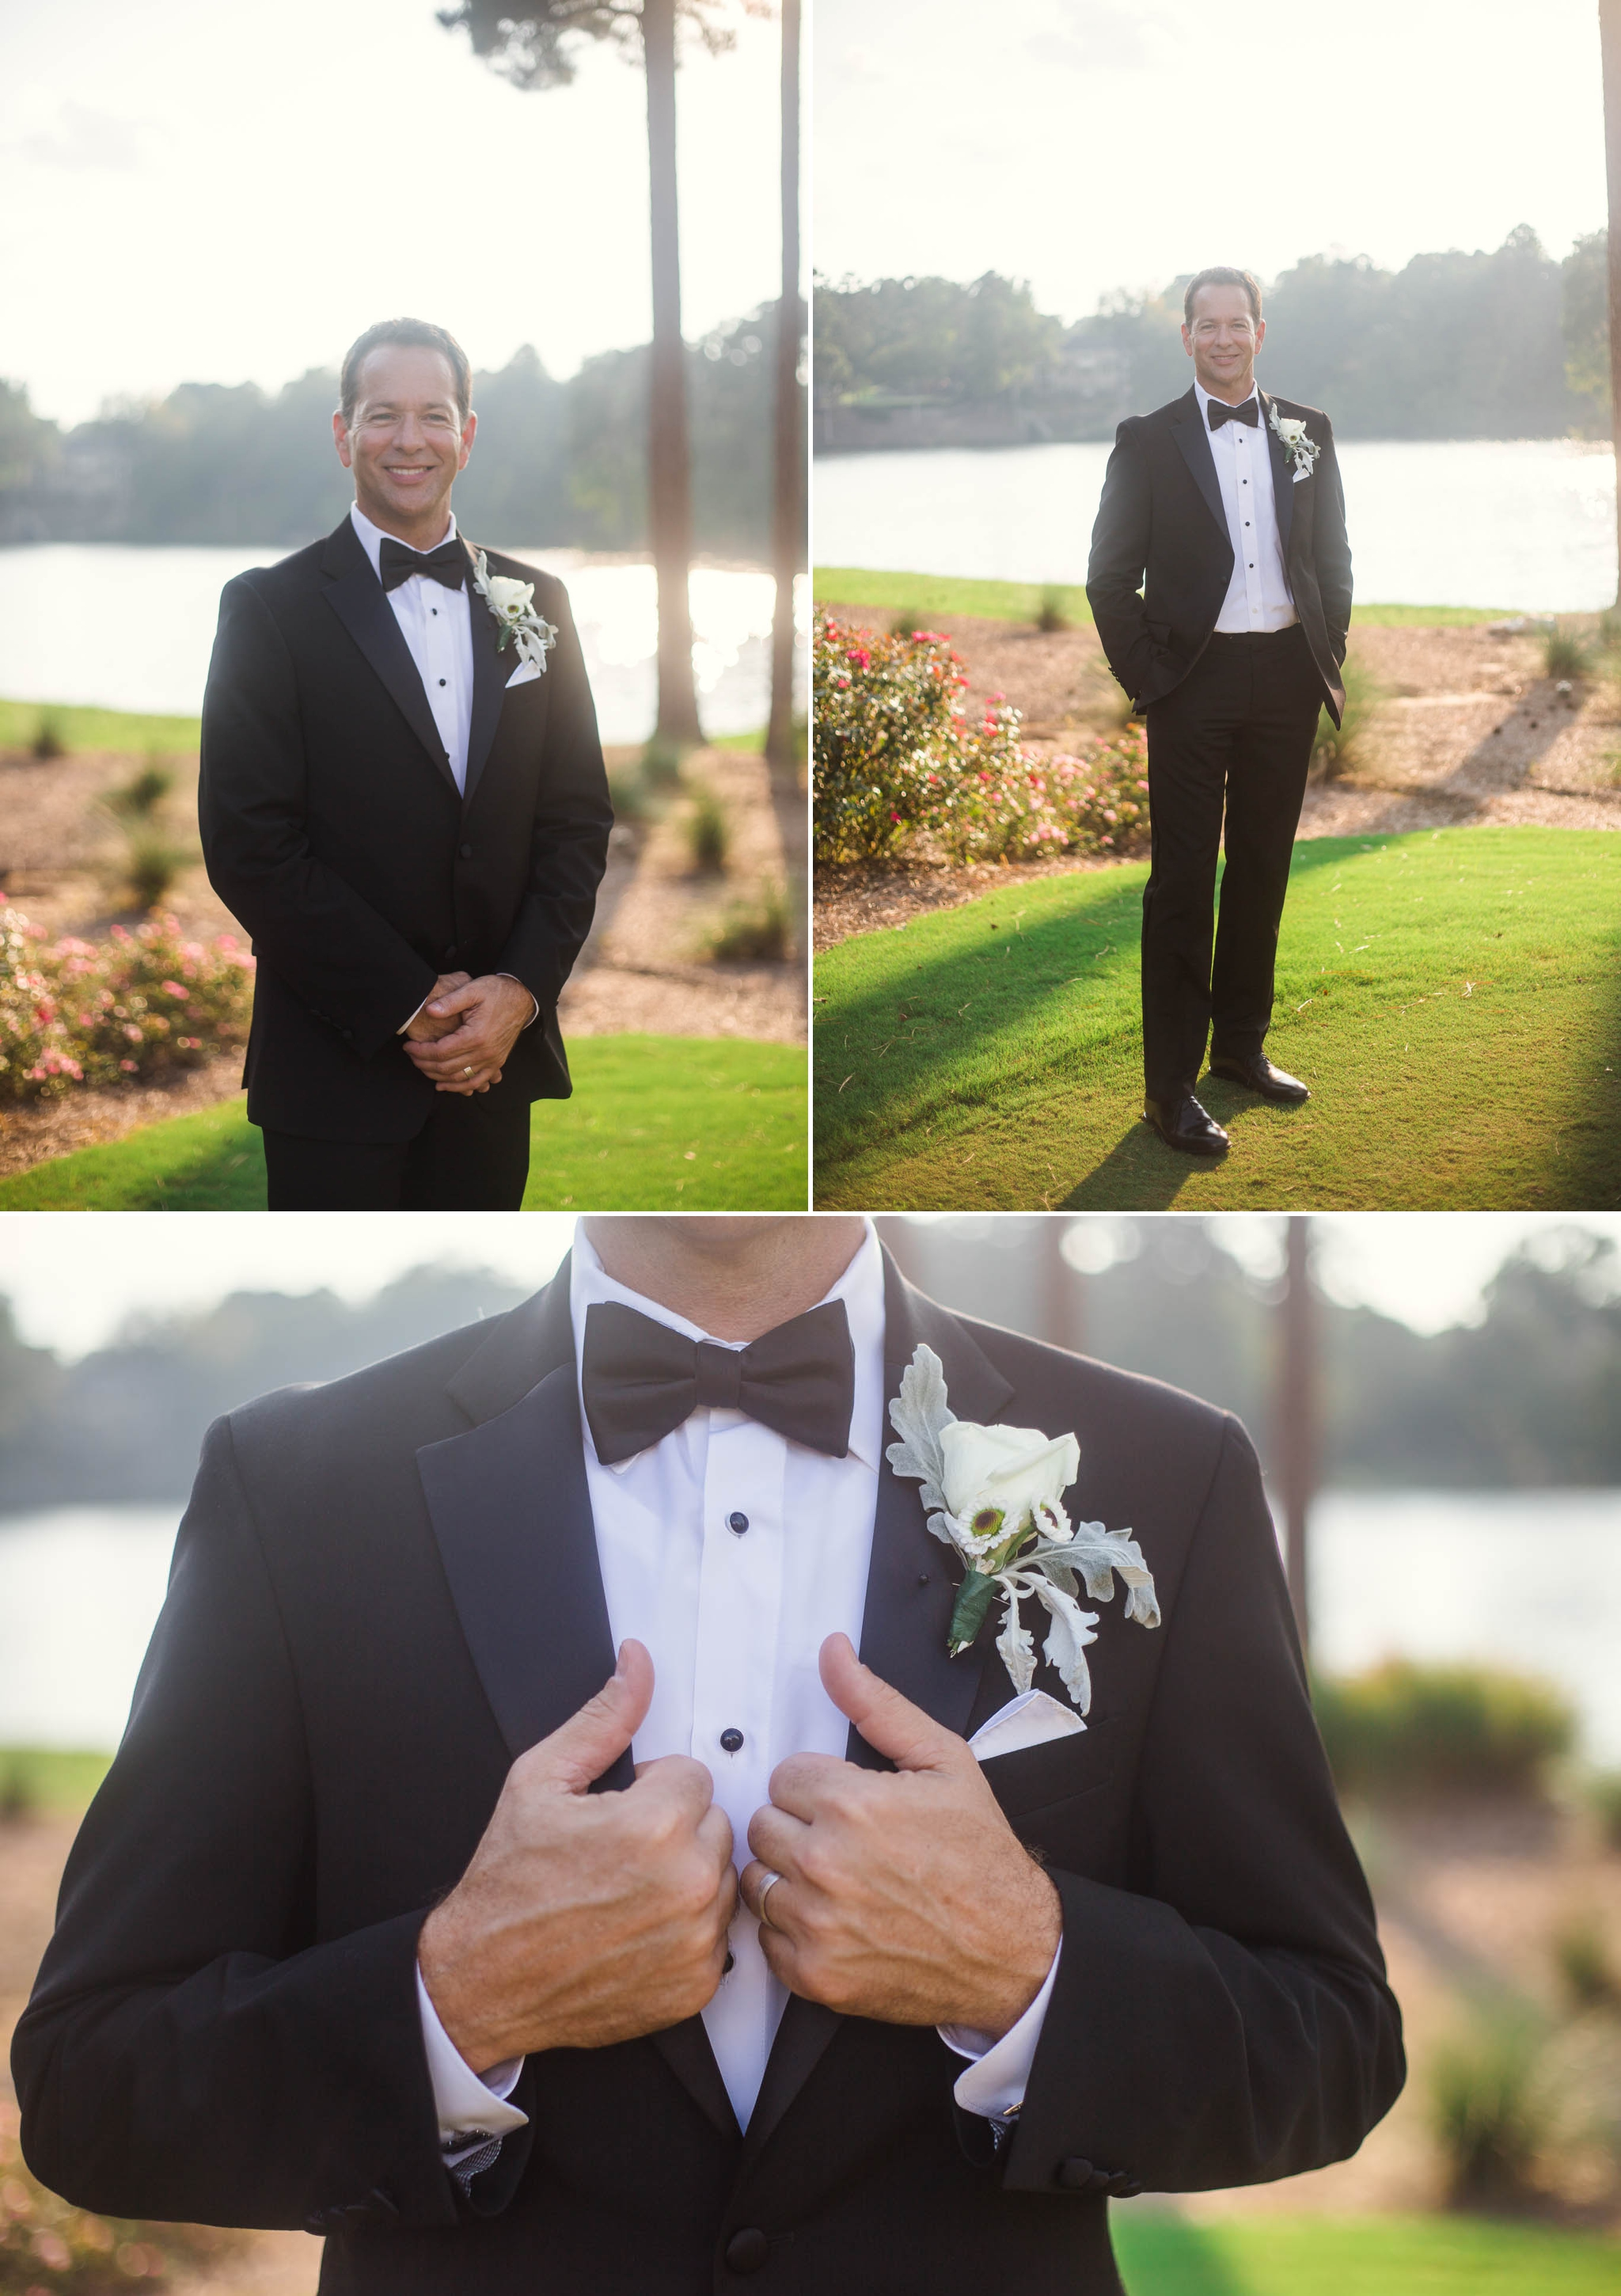 Groom Portraits - Dona + Doug - MacGregor Downs Country Club in Cary, NC - Raleigh Wedding Photographer